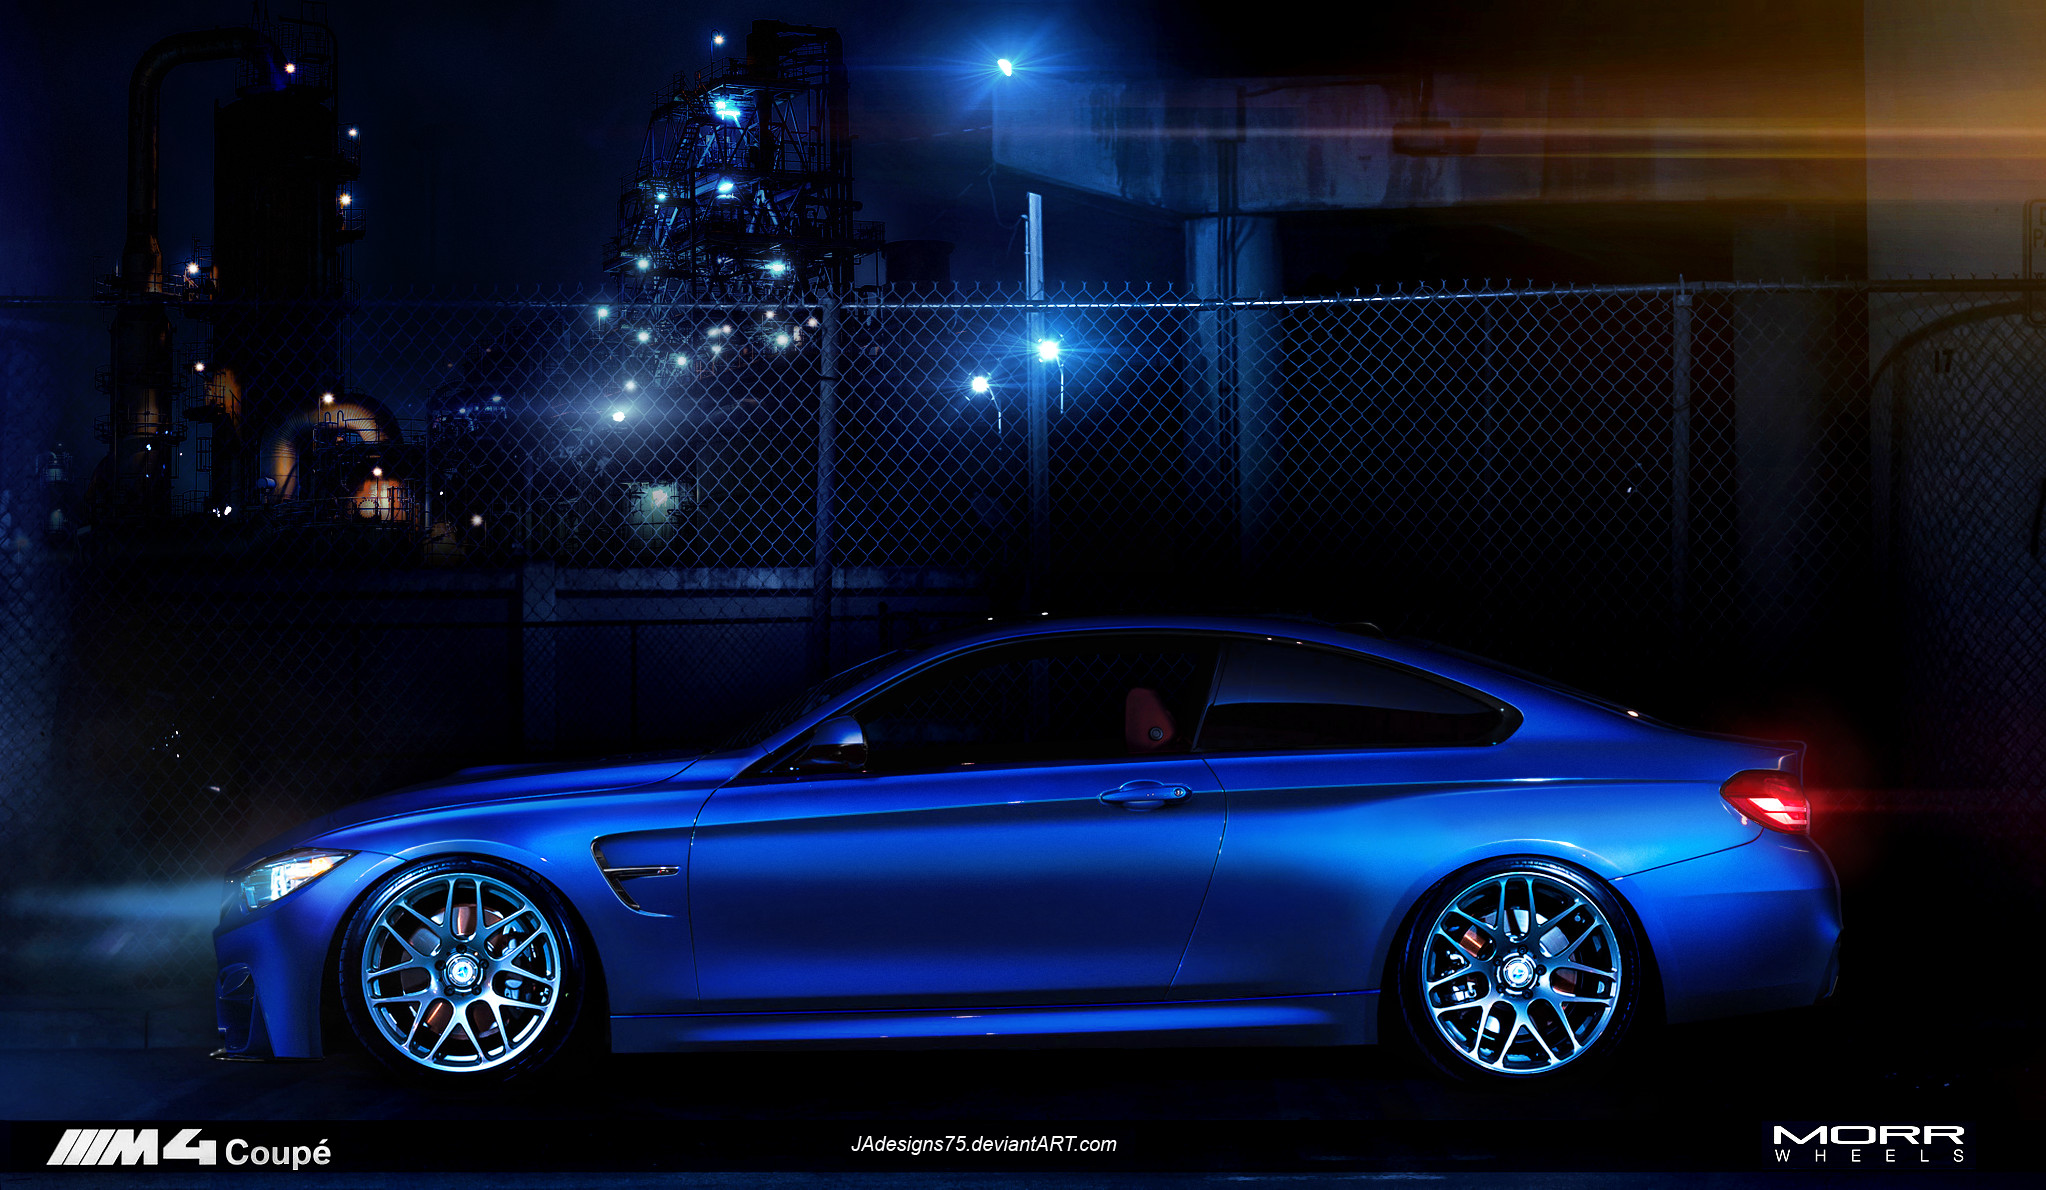 BMW M4 coupe, MORR Wheels. by JAdesigns75